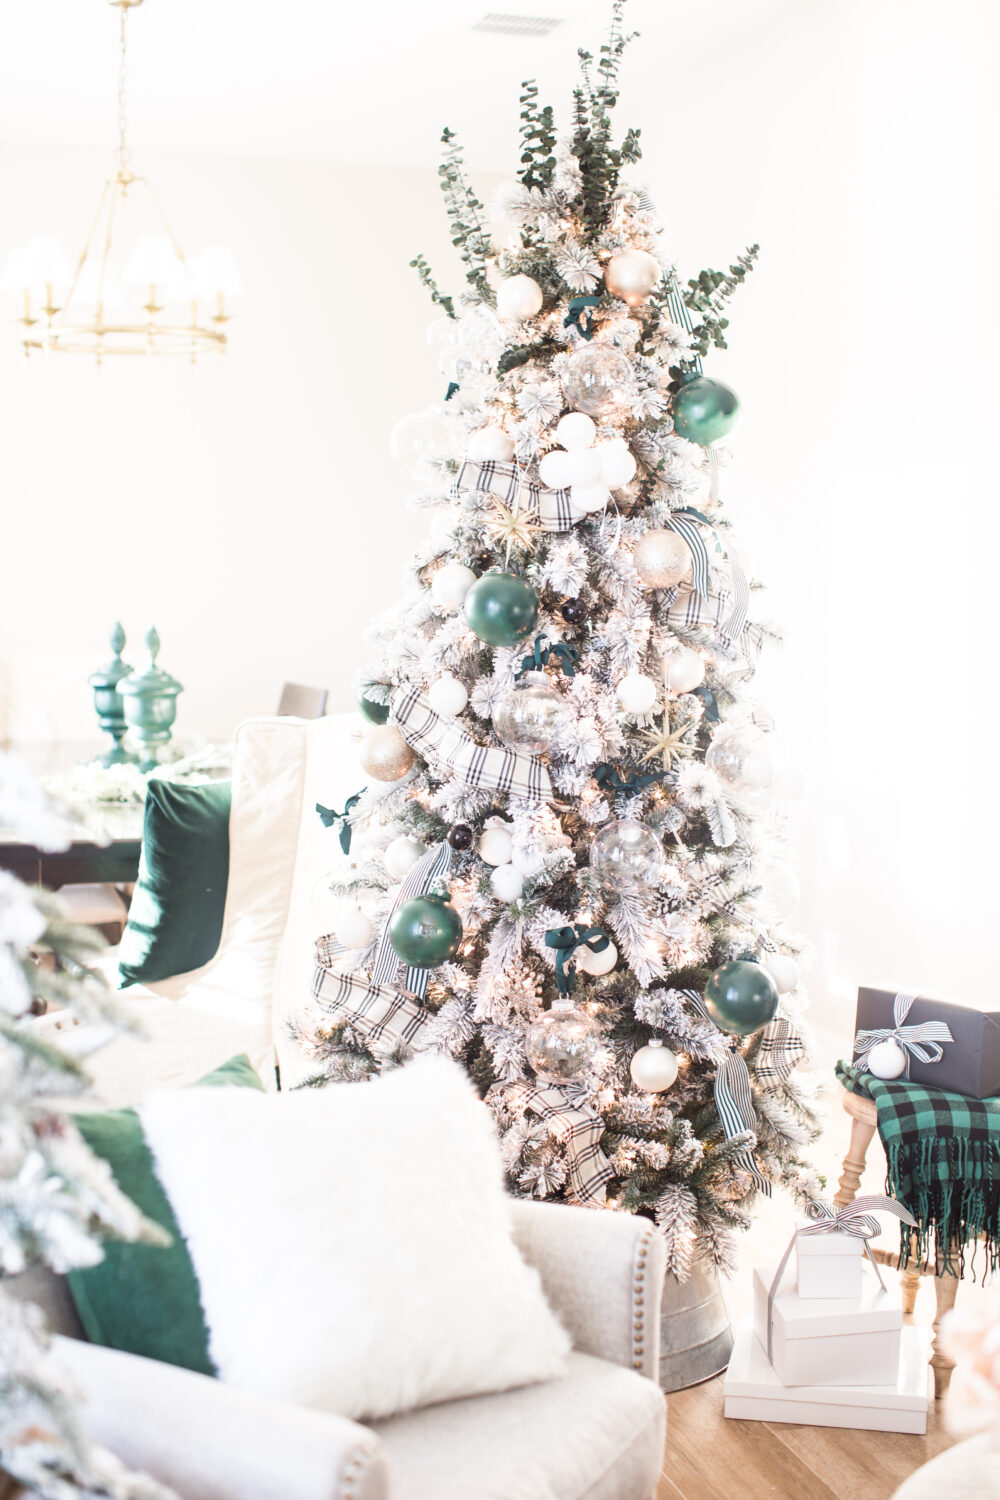 Hunter Green Christmas Tree Decorations from Just Destiny Home